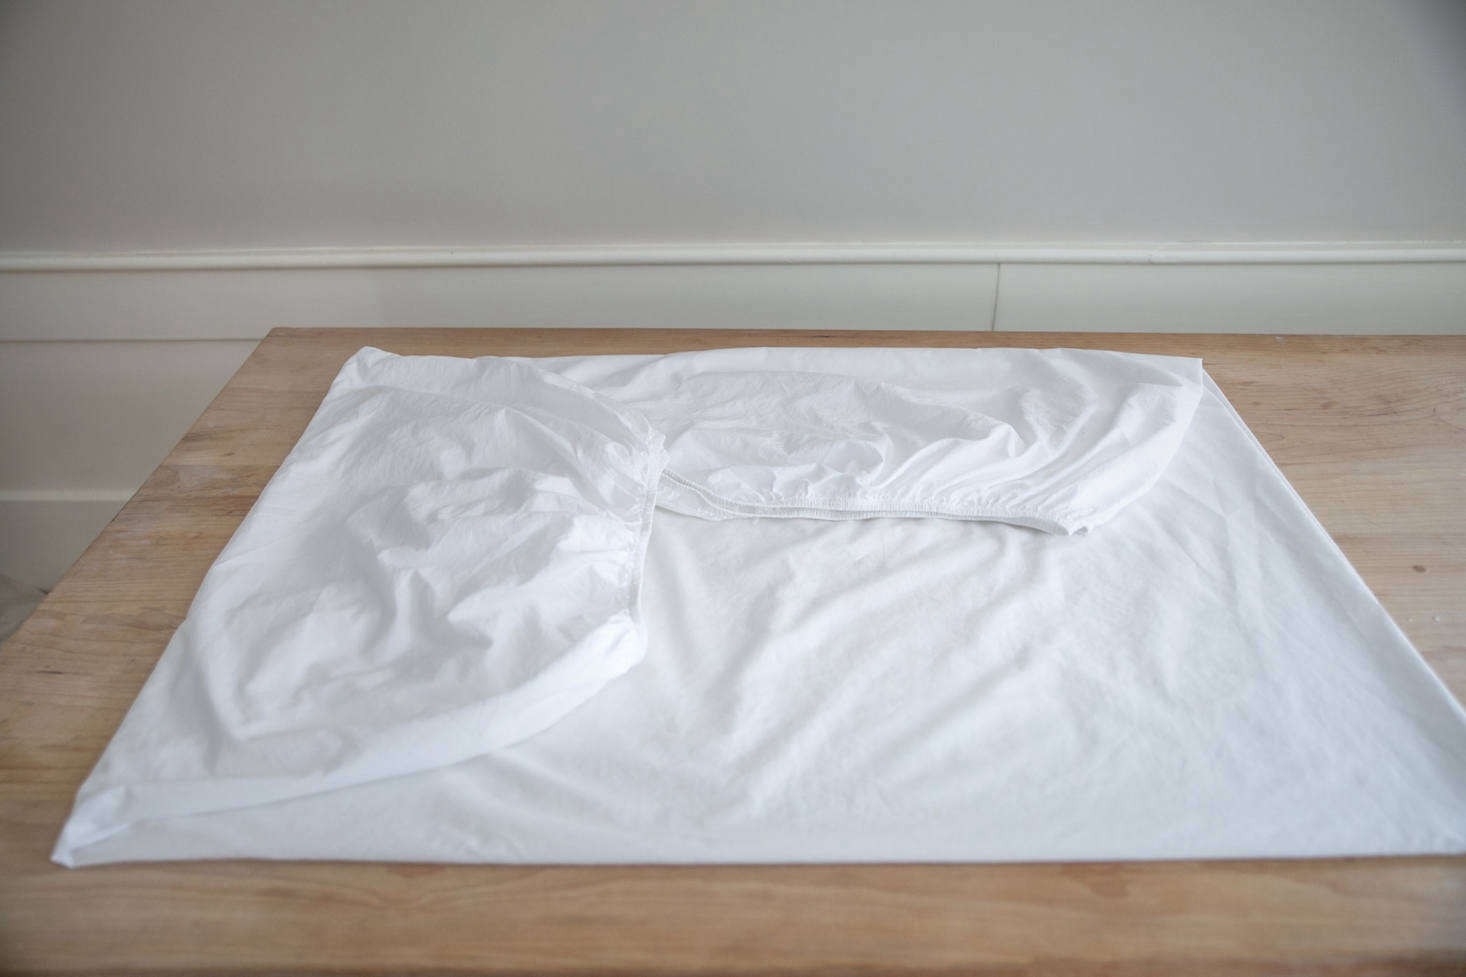 Lay the sheet on a flat surface with the single corner pocket and elastic edges folded over so that the sheet is square. Smooth the sheet. Having eliminated the awkward shape caused by the elastics, you may proceed to fold your sheet as you normally would.